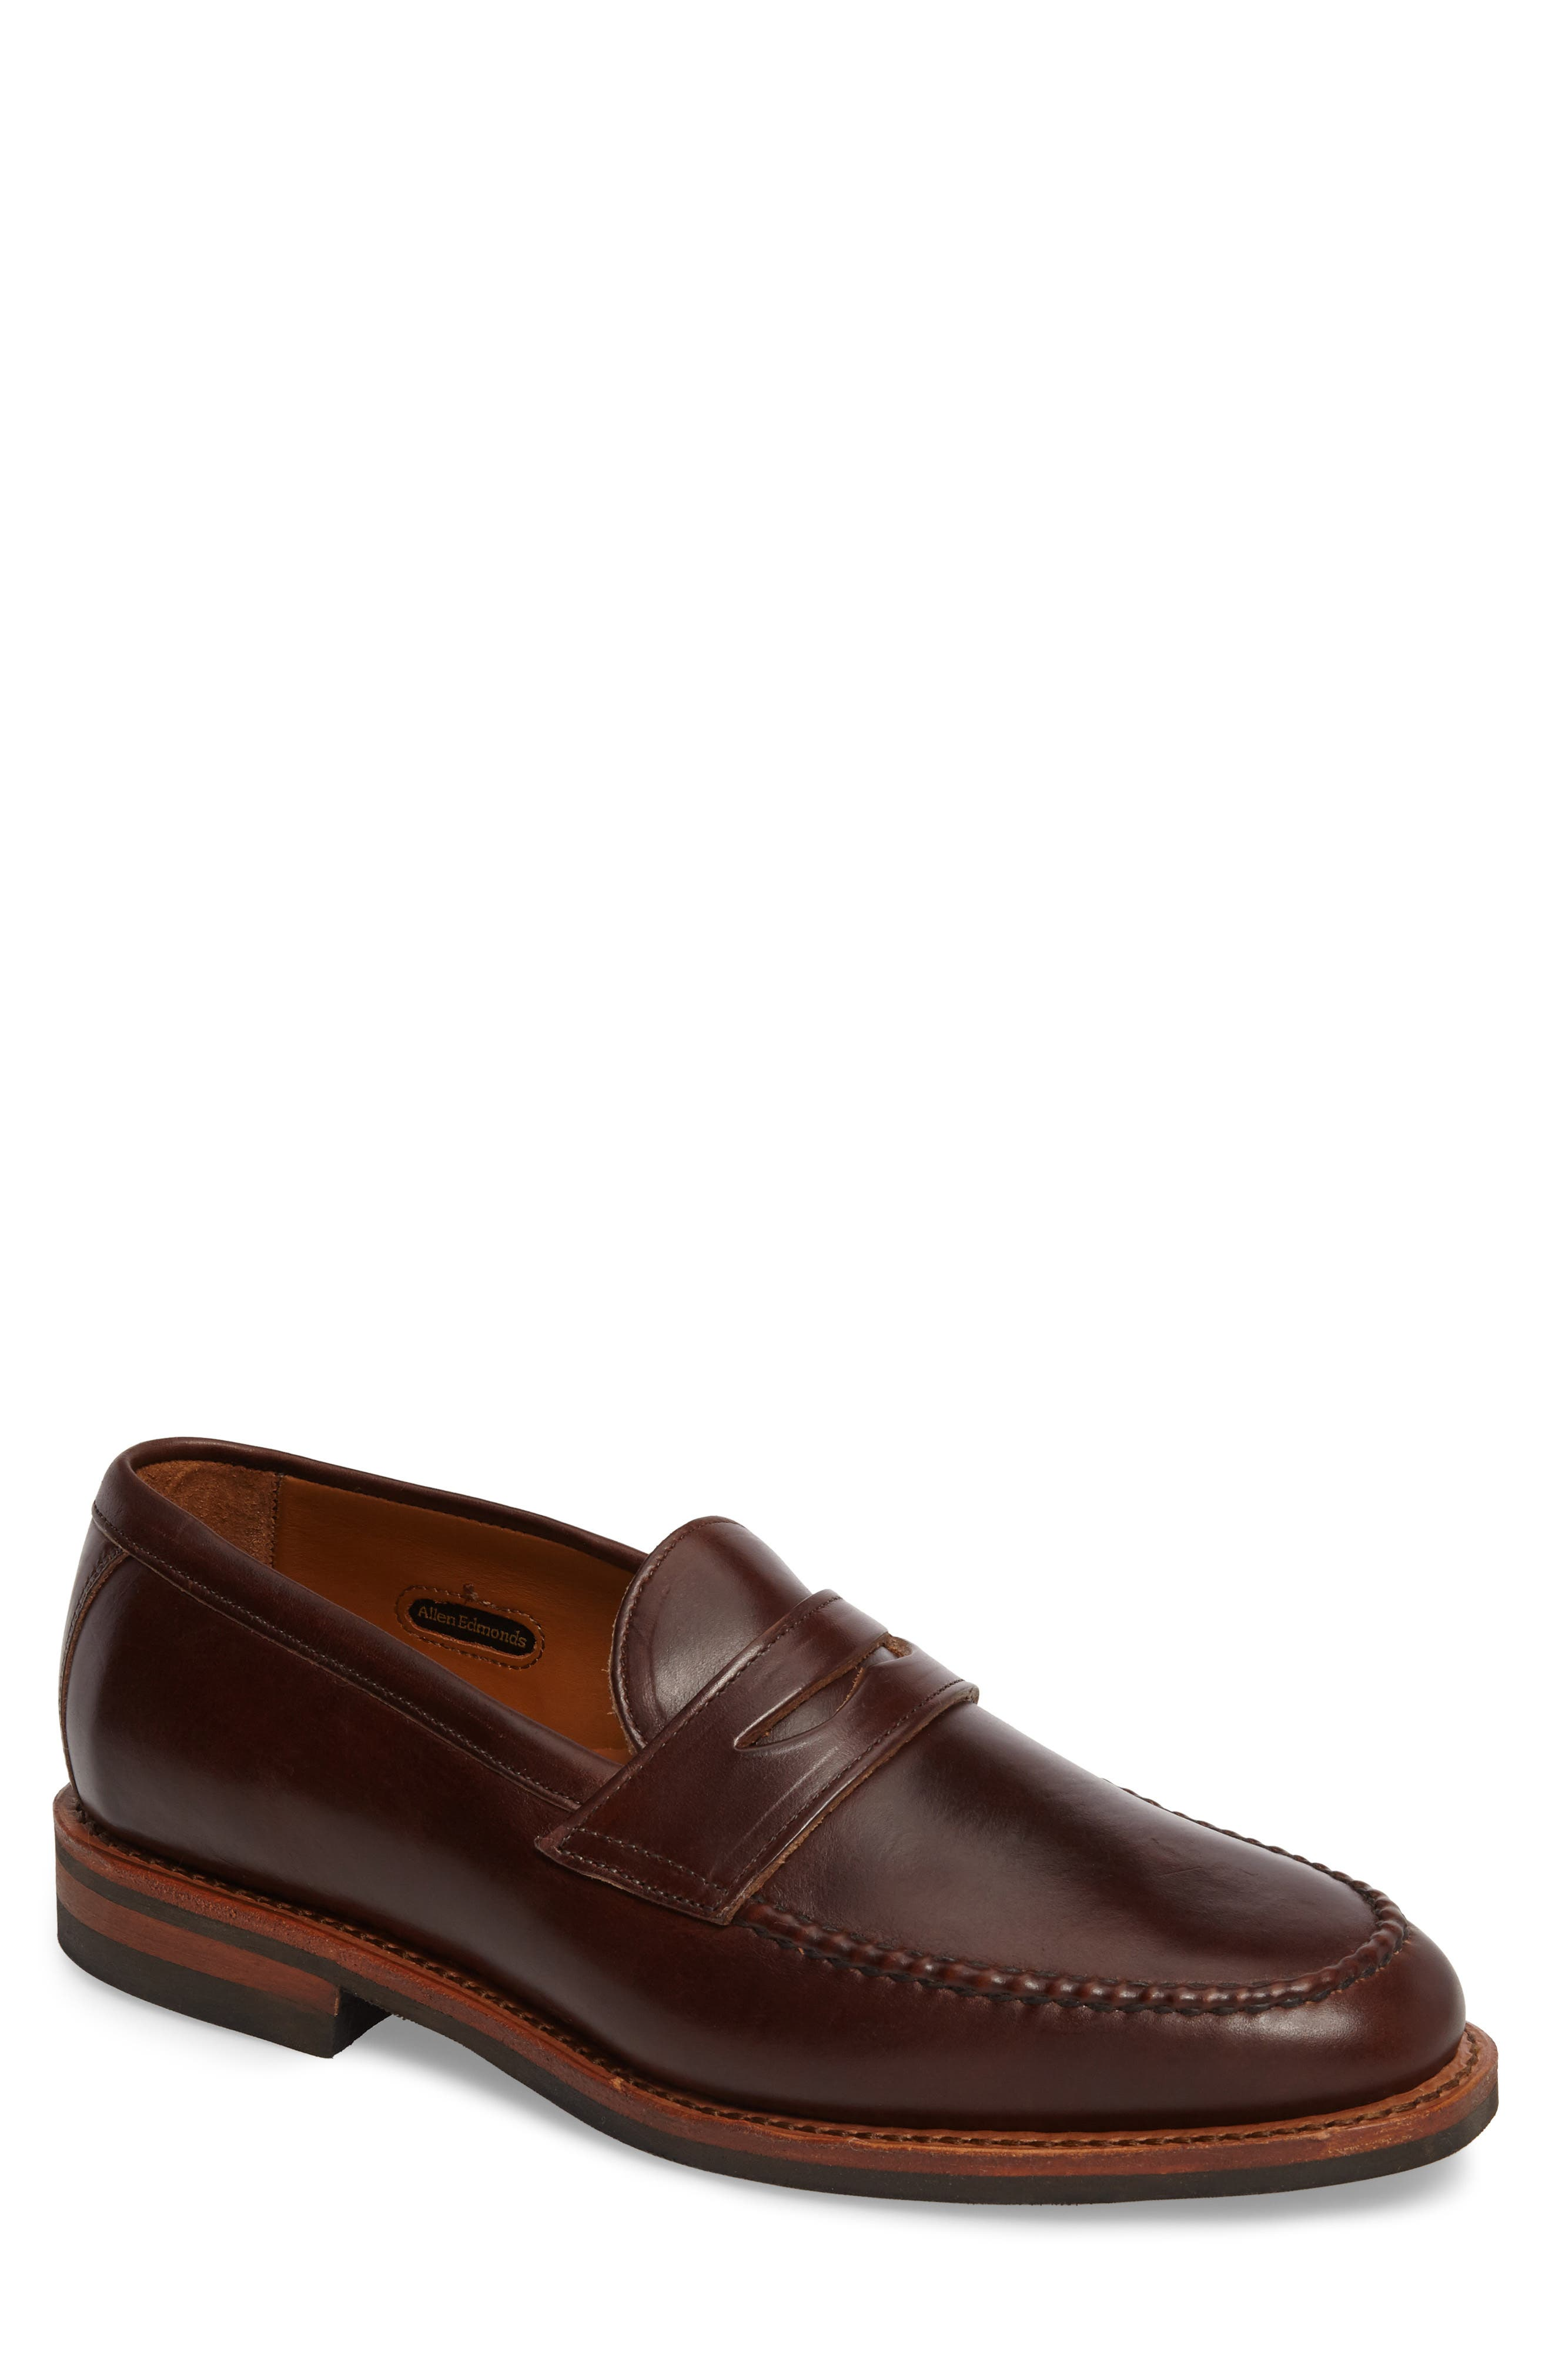 Addison Penny Loafer,                         Main,                         color, BROWN LEATHER